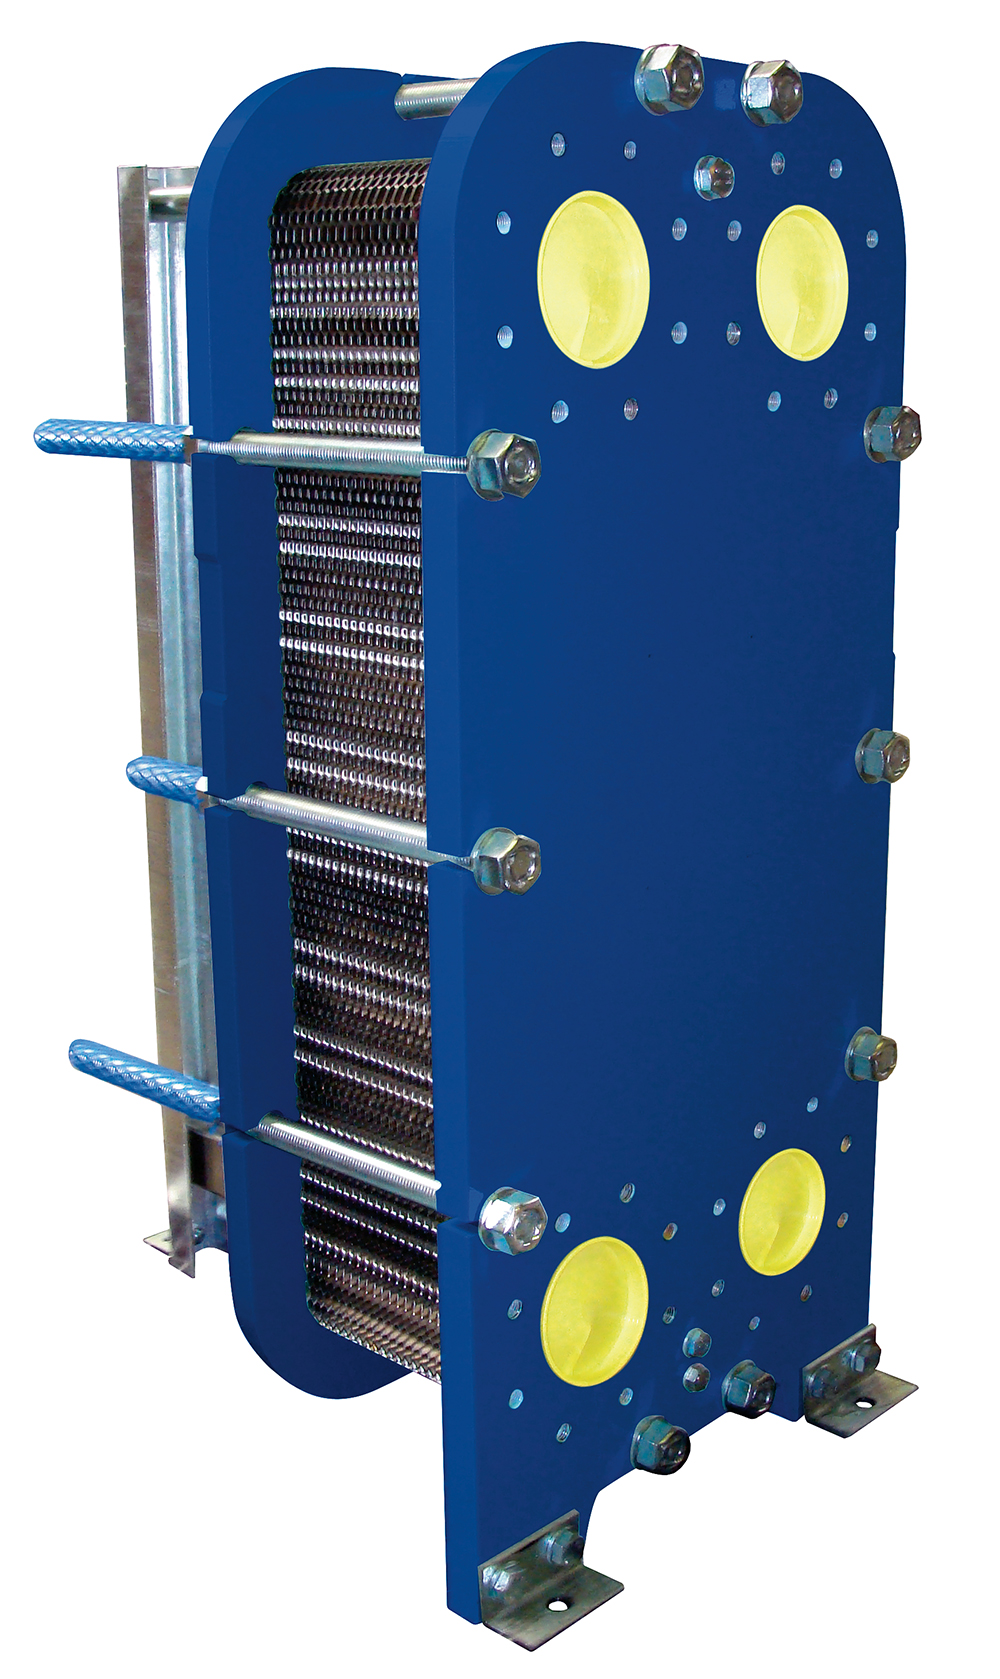 Standard Gasketed Plate Heat Exchanger Sme Process